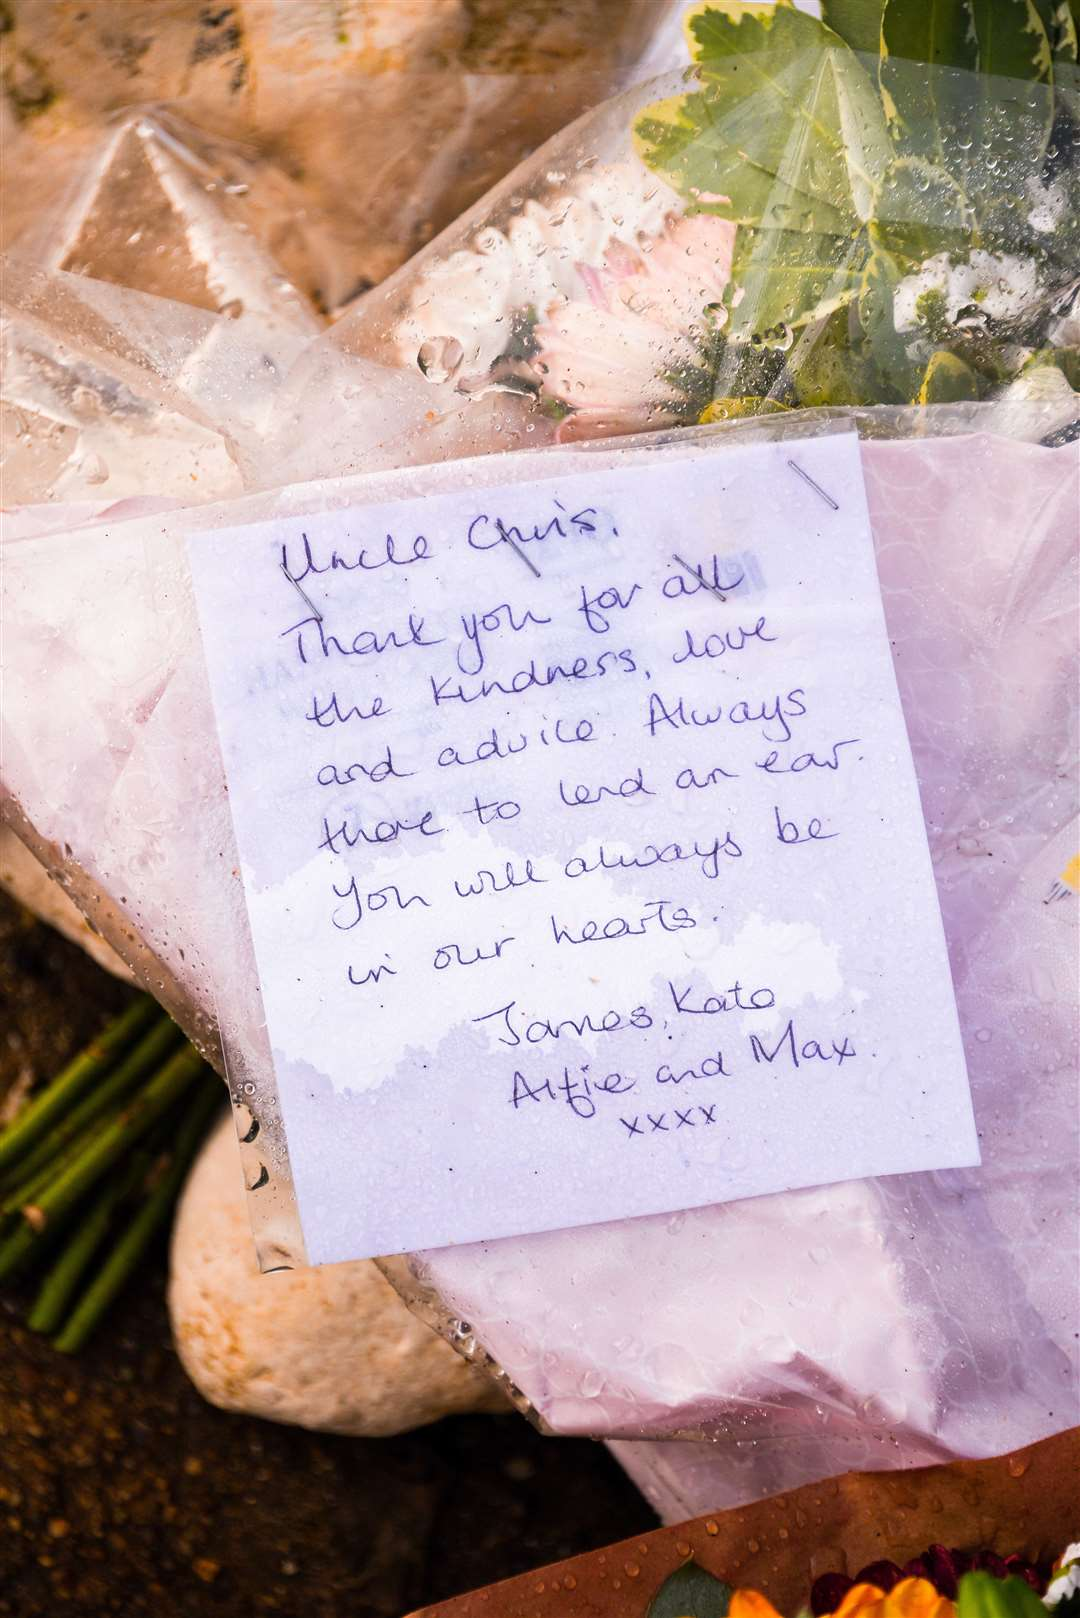 Flowers and tributes were left for Chris Bamfield, near the Sailing Club in Hunstanton